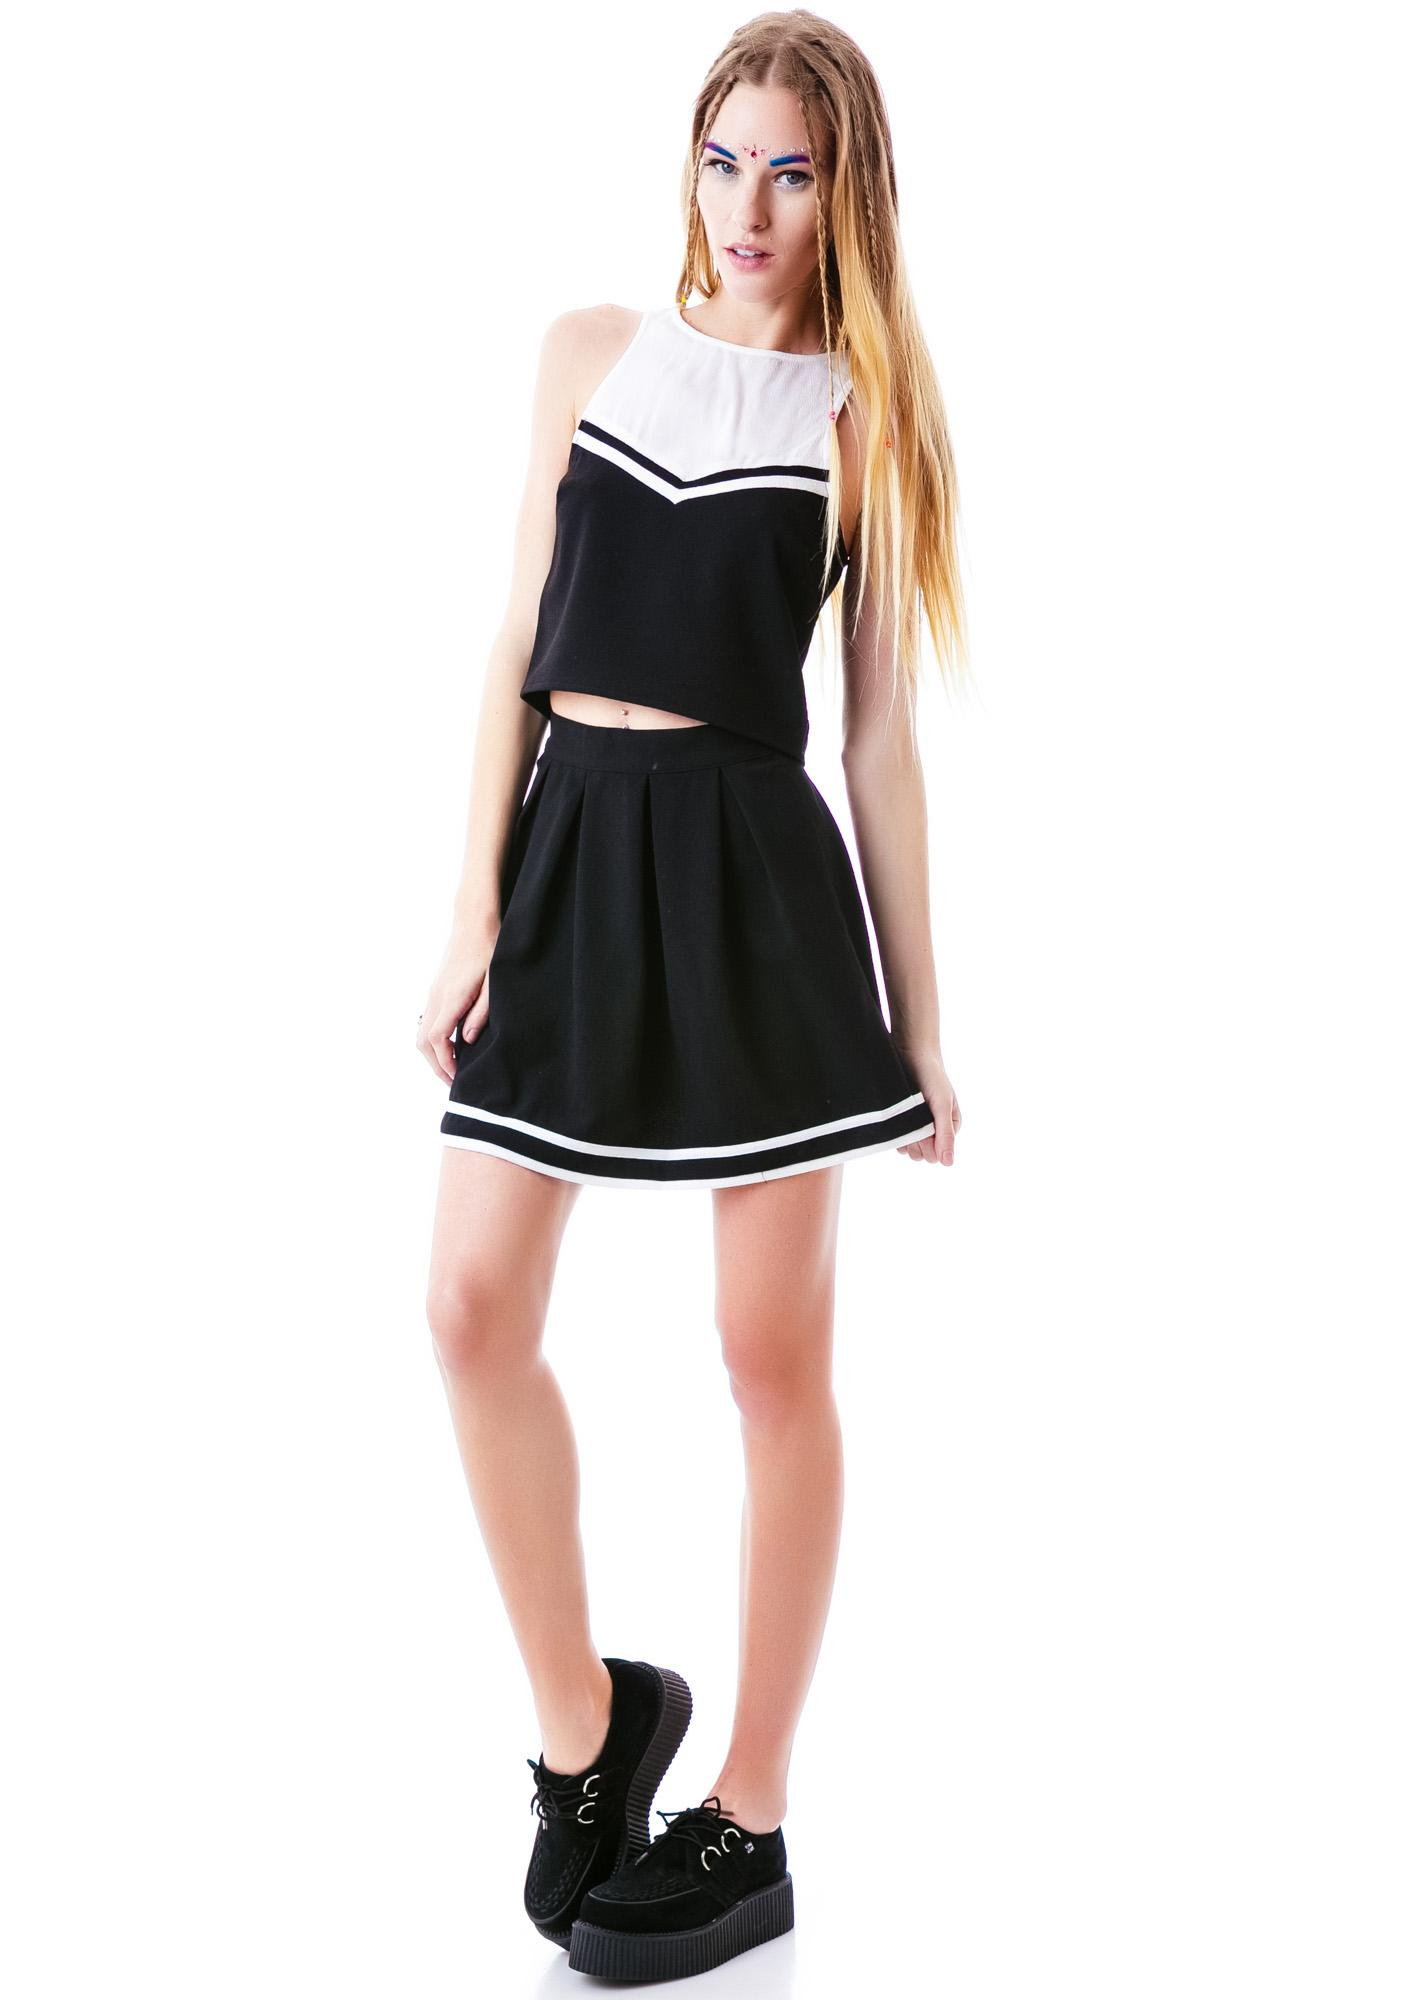 Mink Pink Cheerleader Top